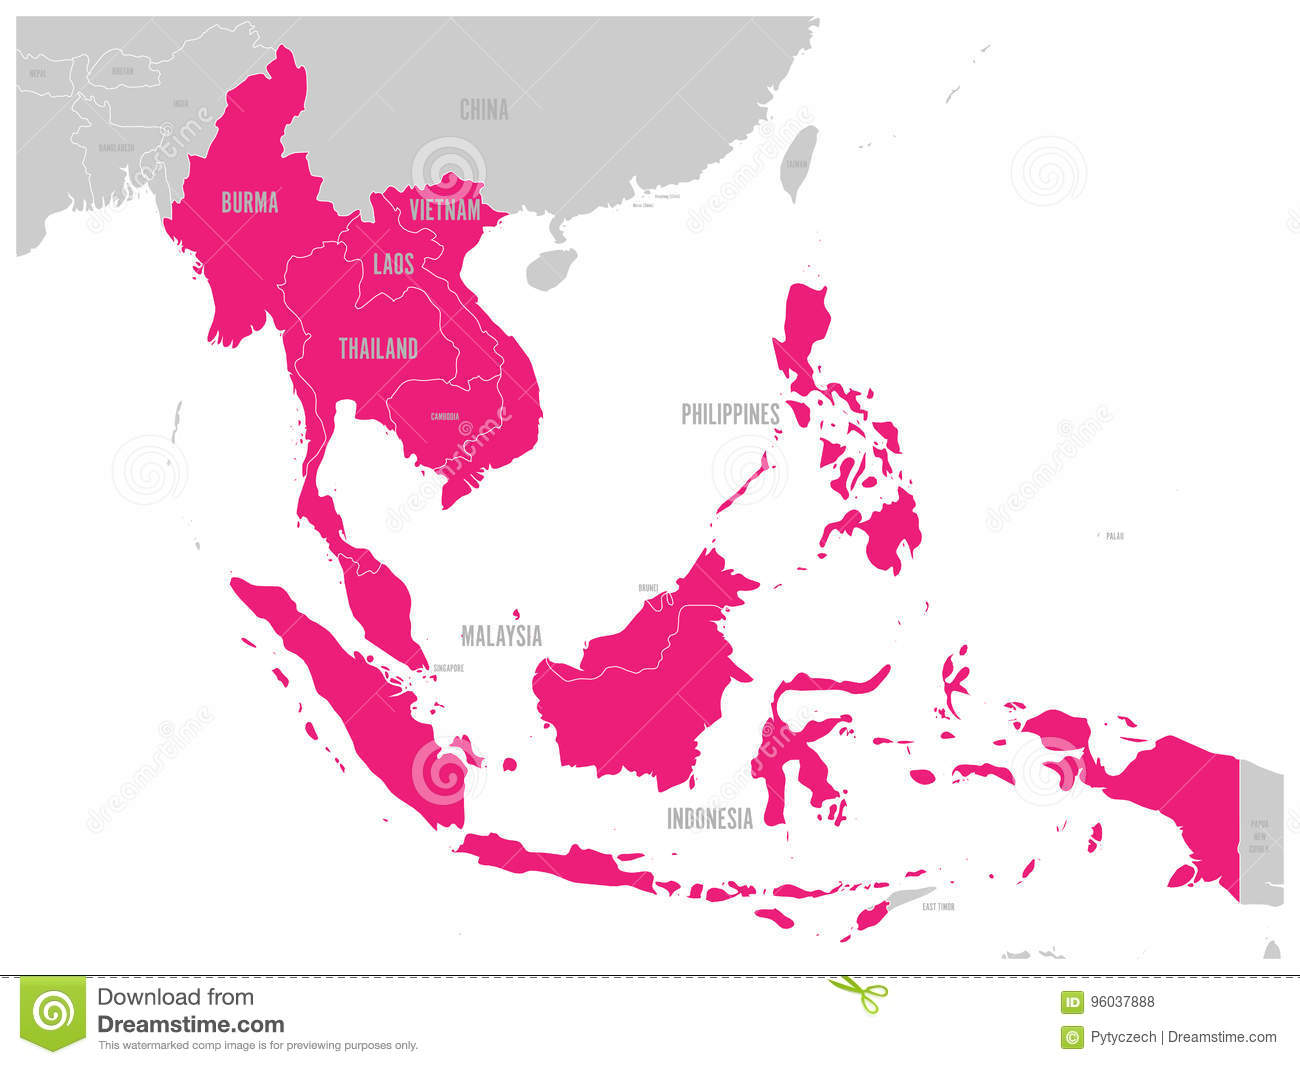 ASEAN Economic munity AEC Map Grey Map With Pink Highlighted